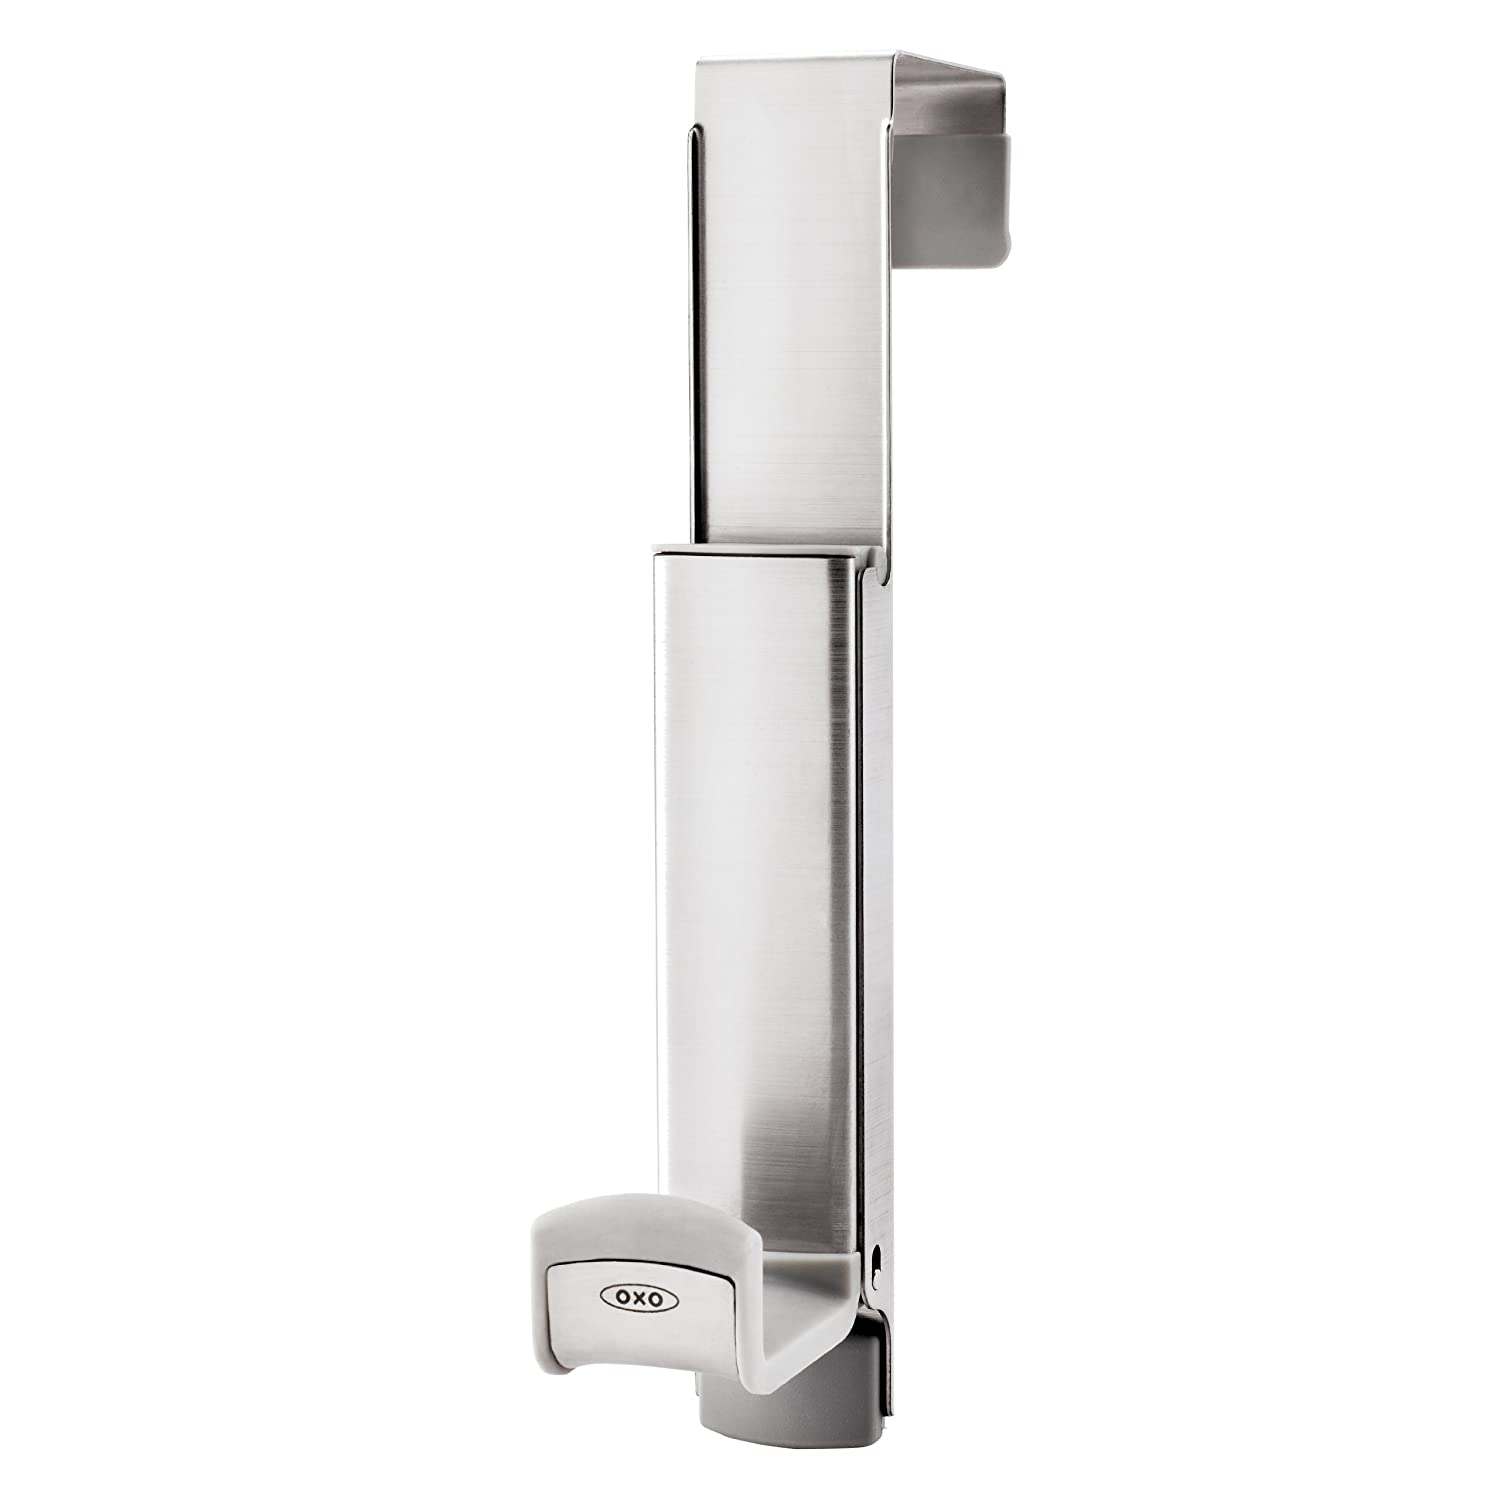 OXO Good Grips Stainless Steel Over the Door Folding Valet 1444180